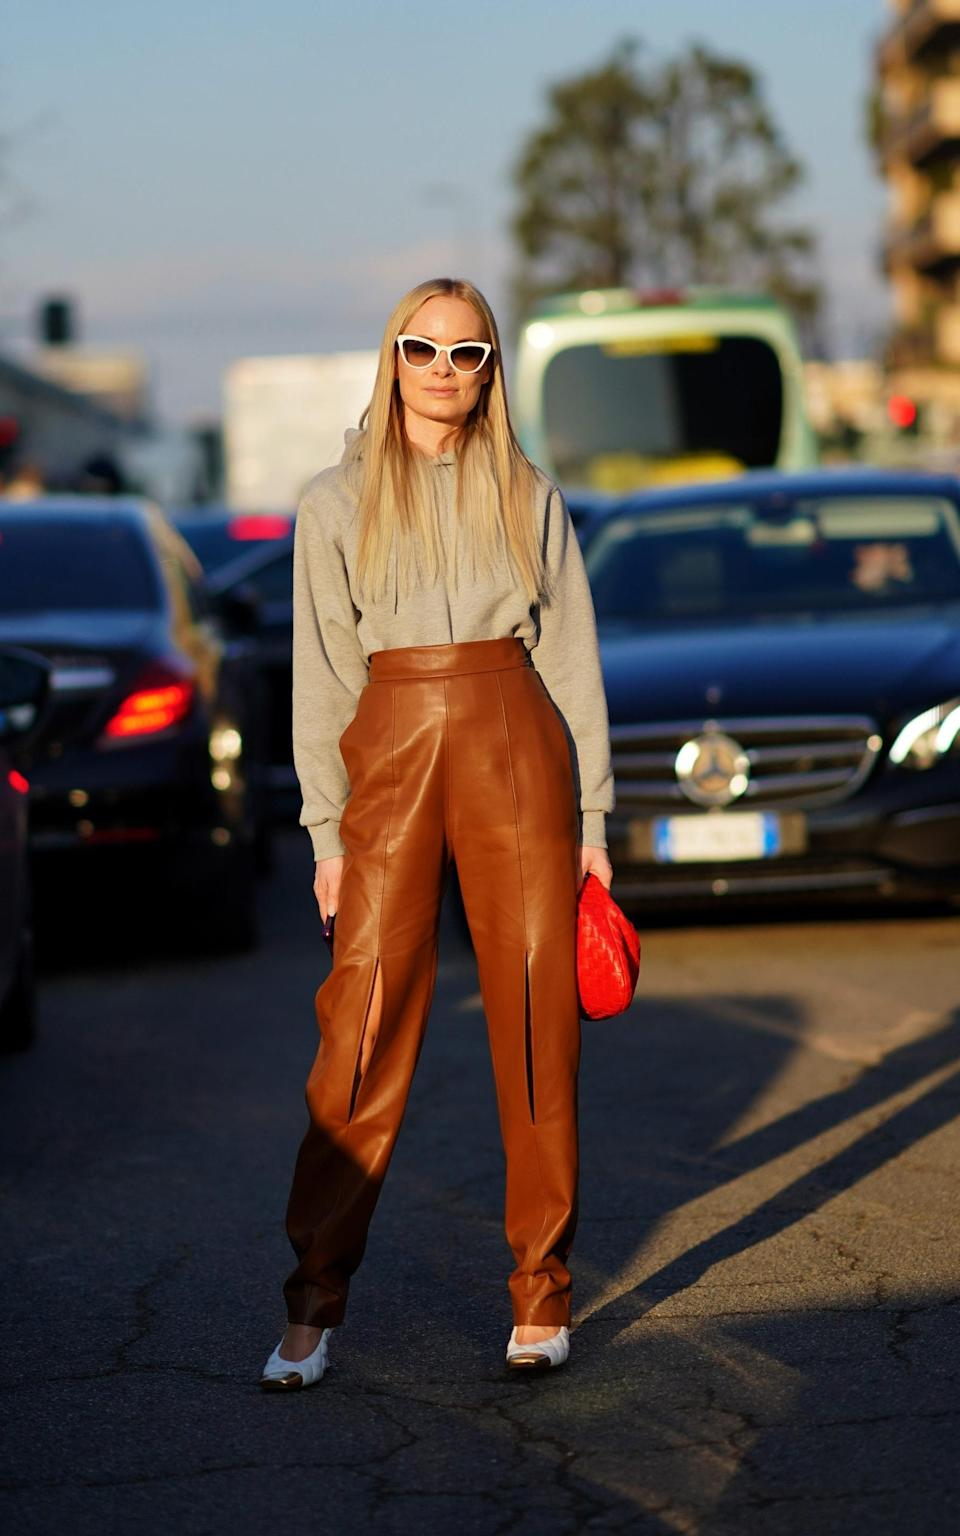 Looser leather trousers are an ideal alternative to jeans - Getty